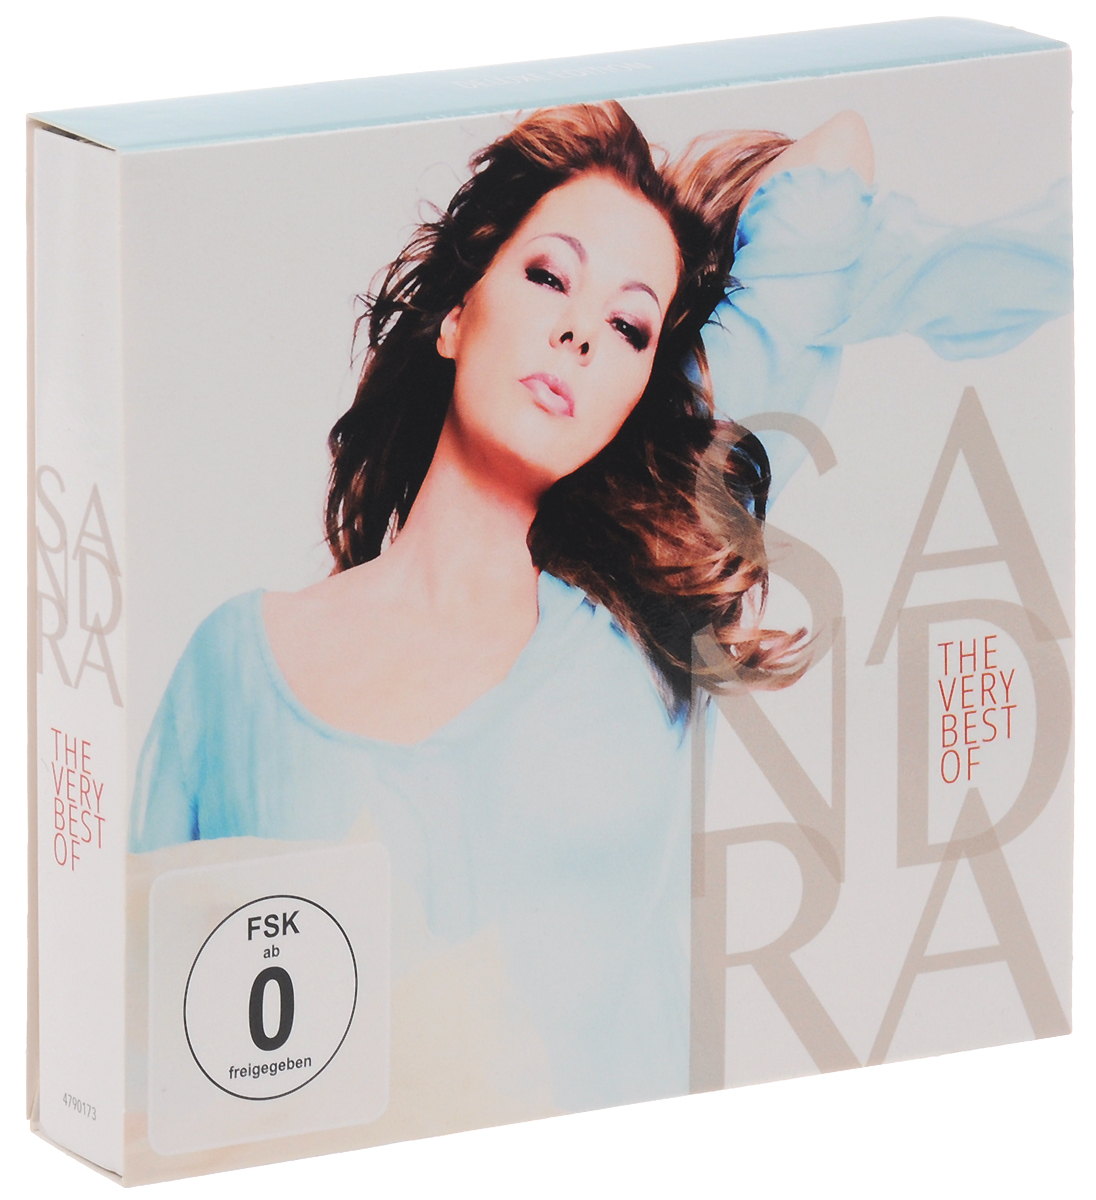 Sandra Sandra. The Very Best Of Sandra. Deluxe Edition (2 CD + DVD) houses of the holy deluxe cd edition cd